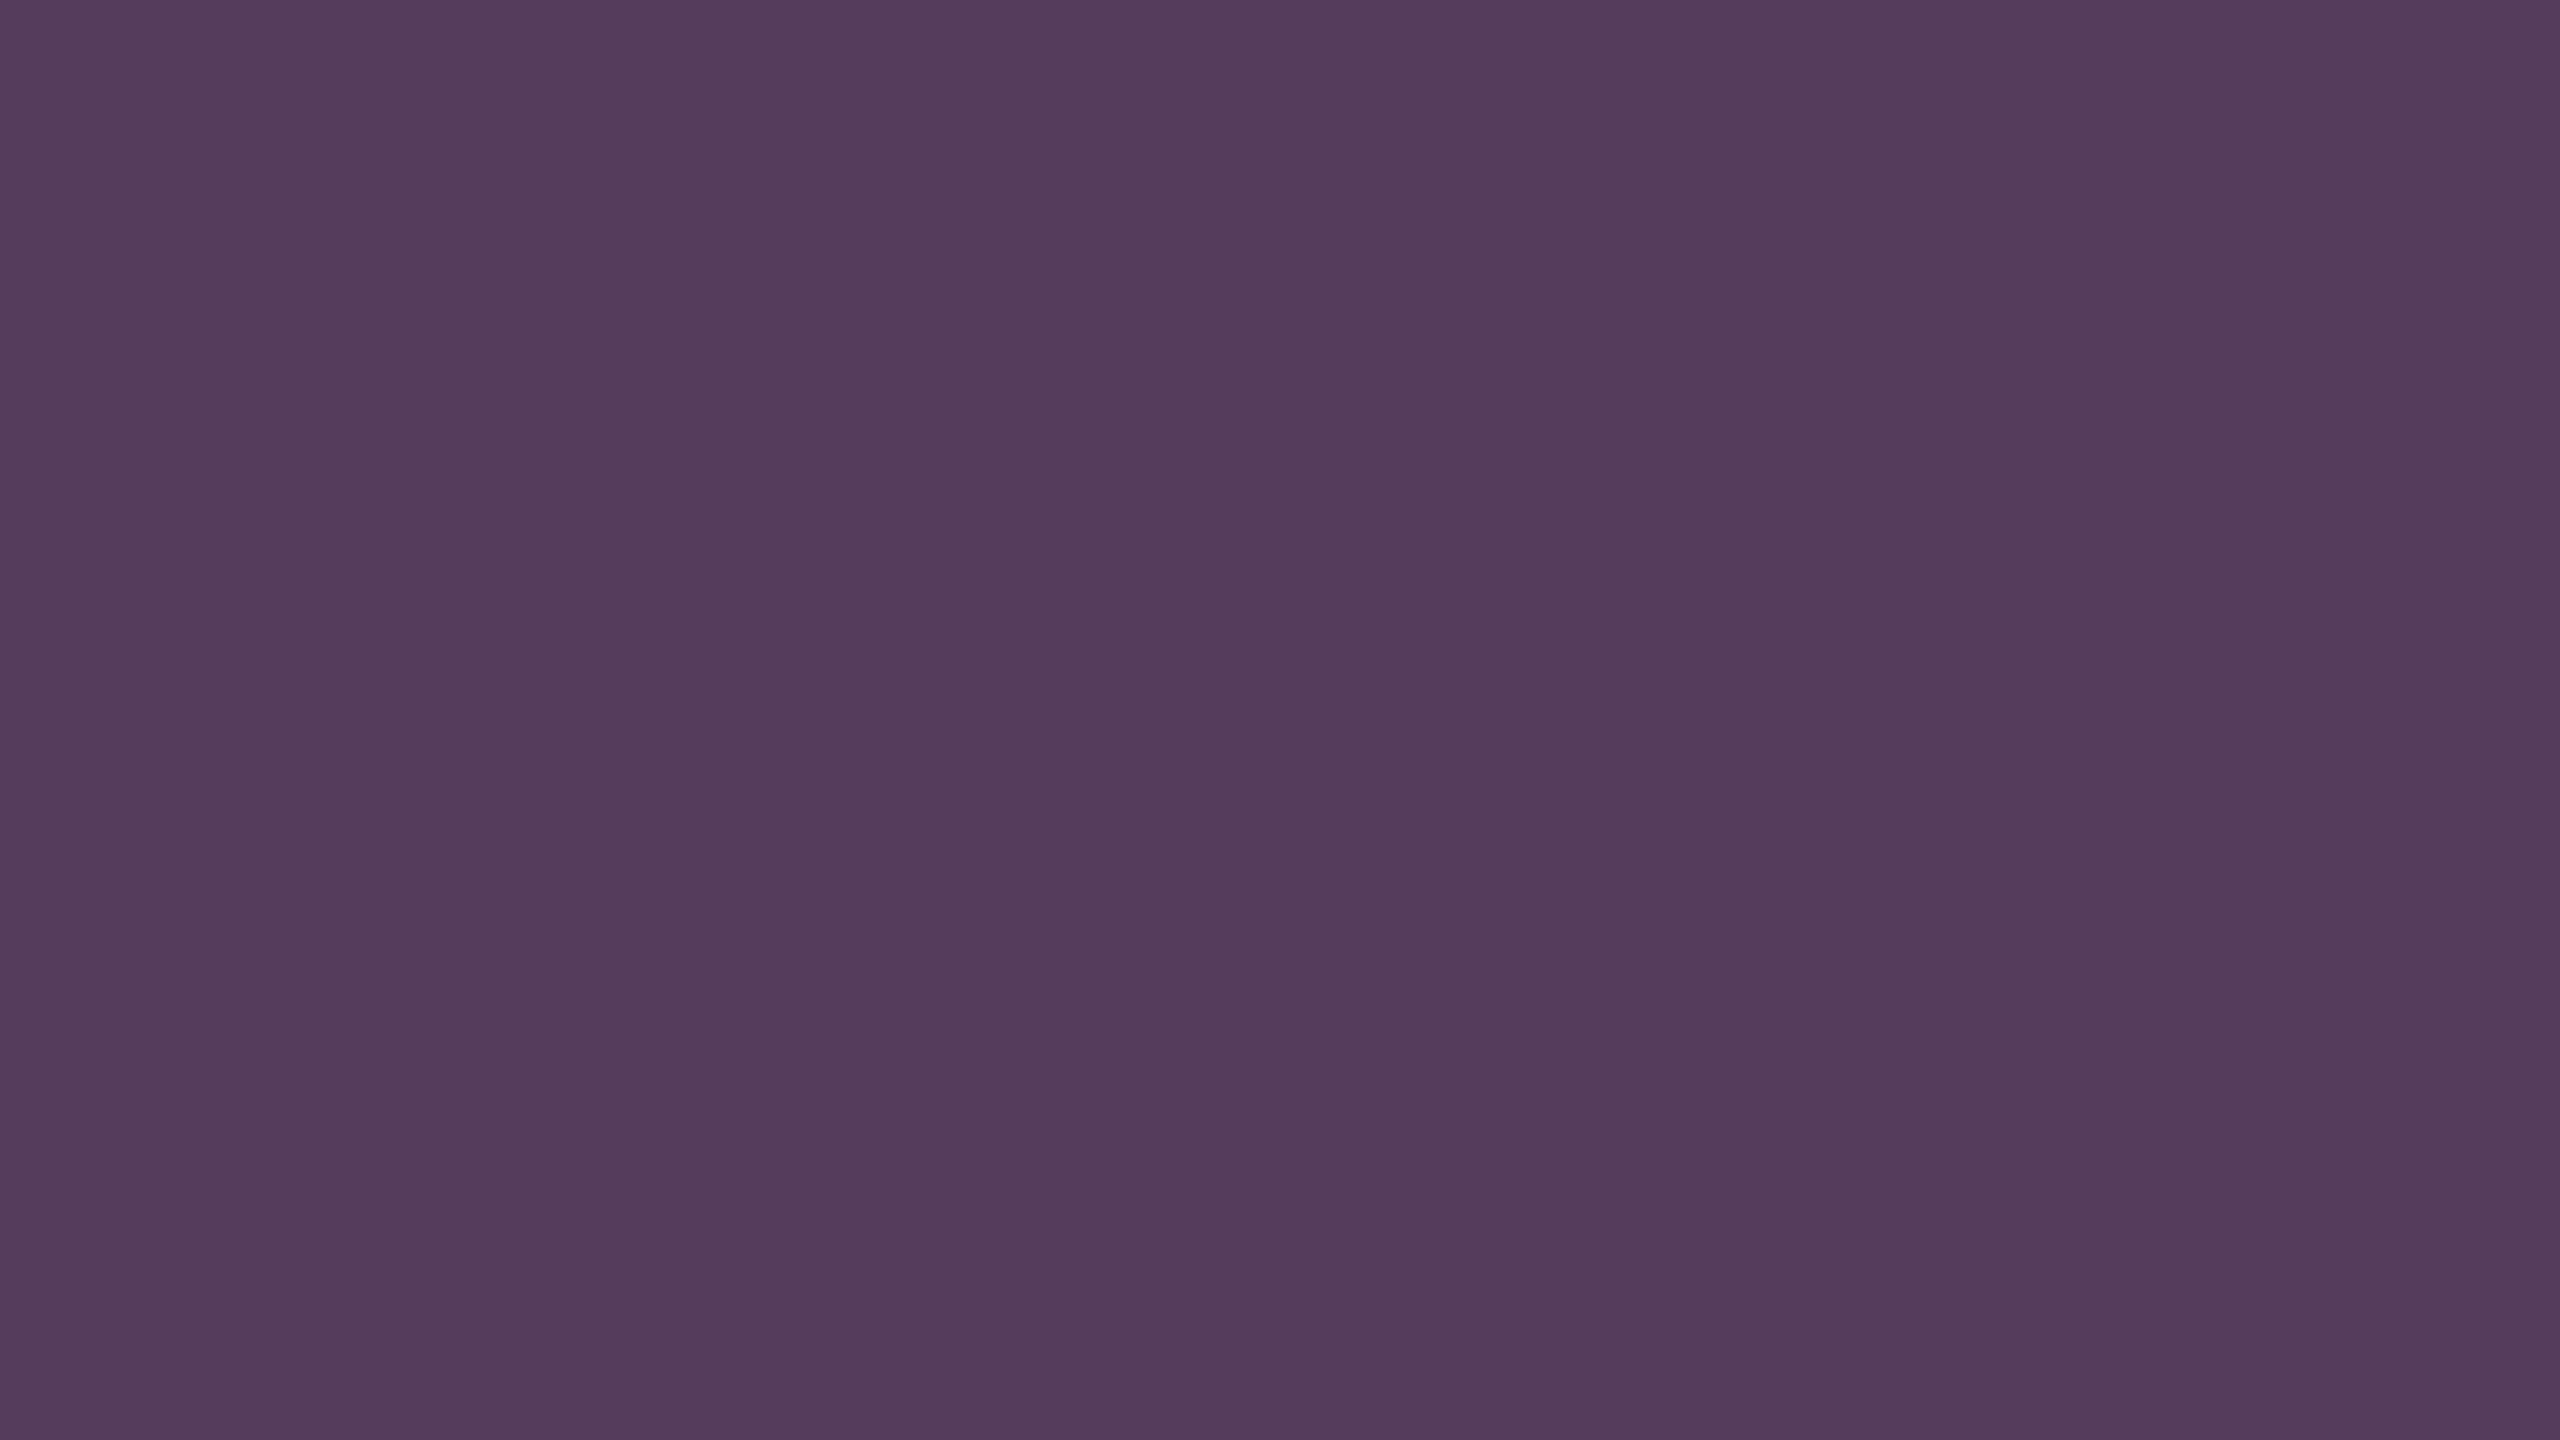 2560x1440 English Violet Solid Color Background